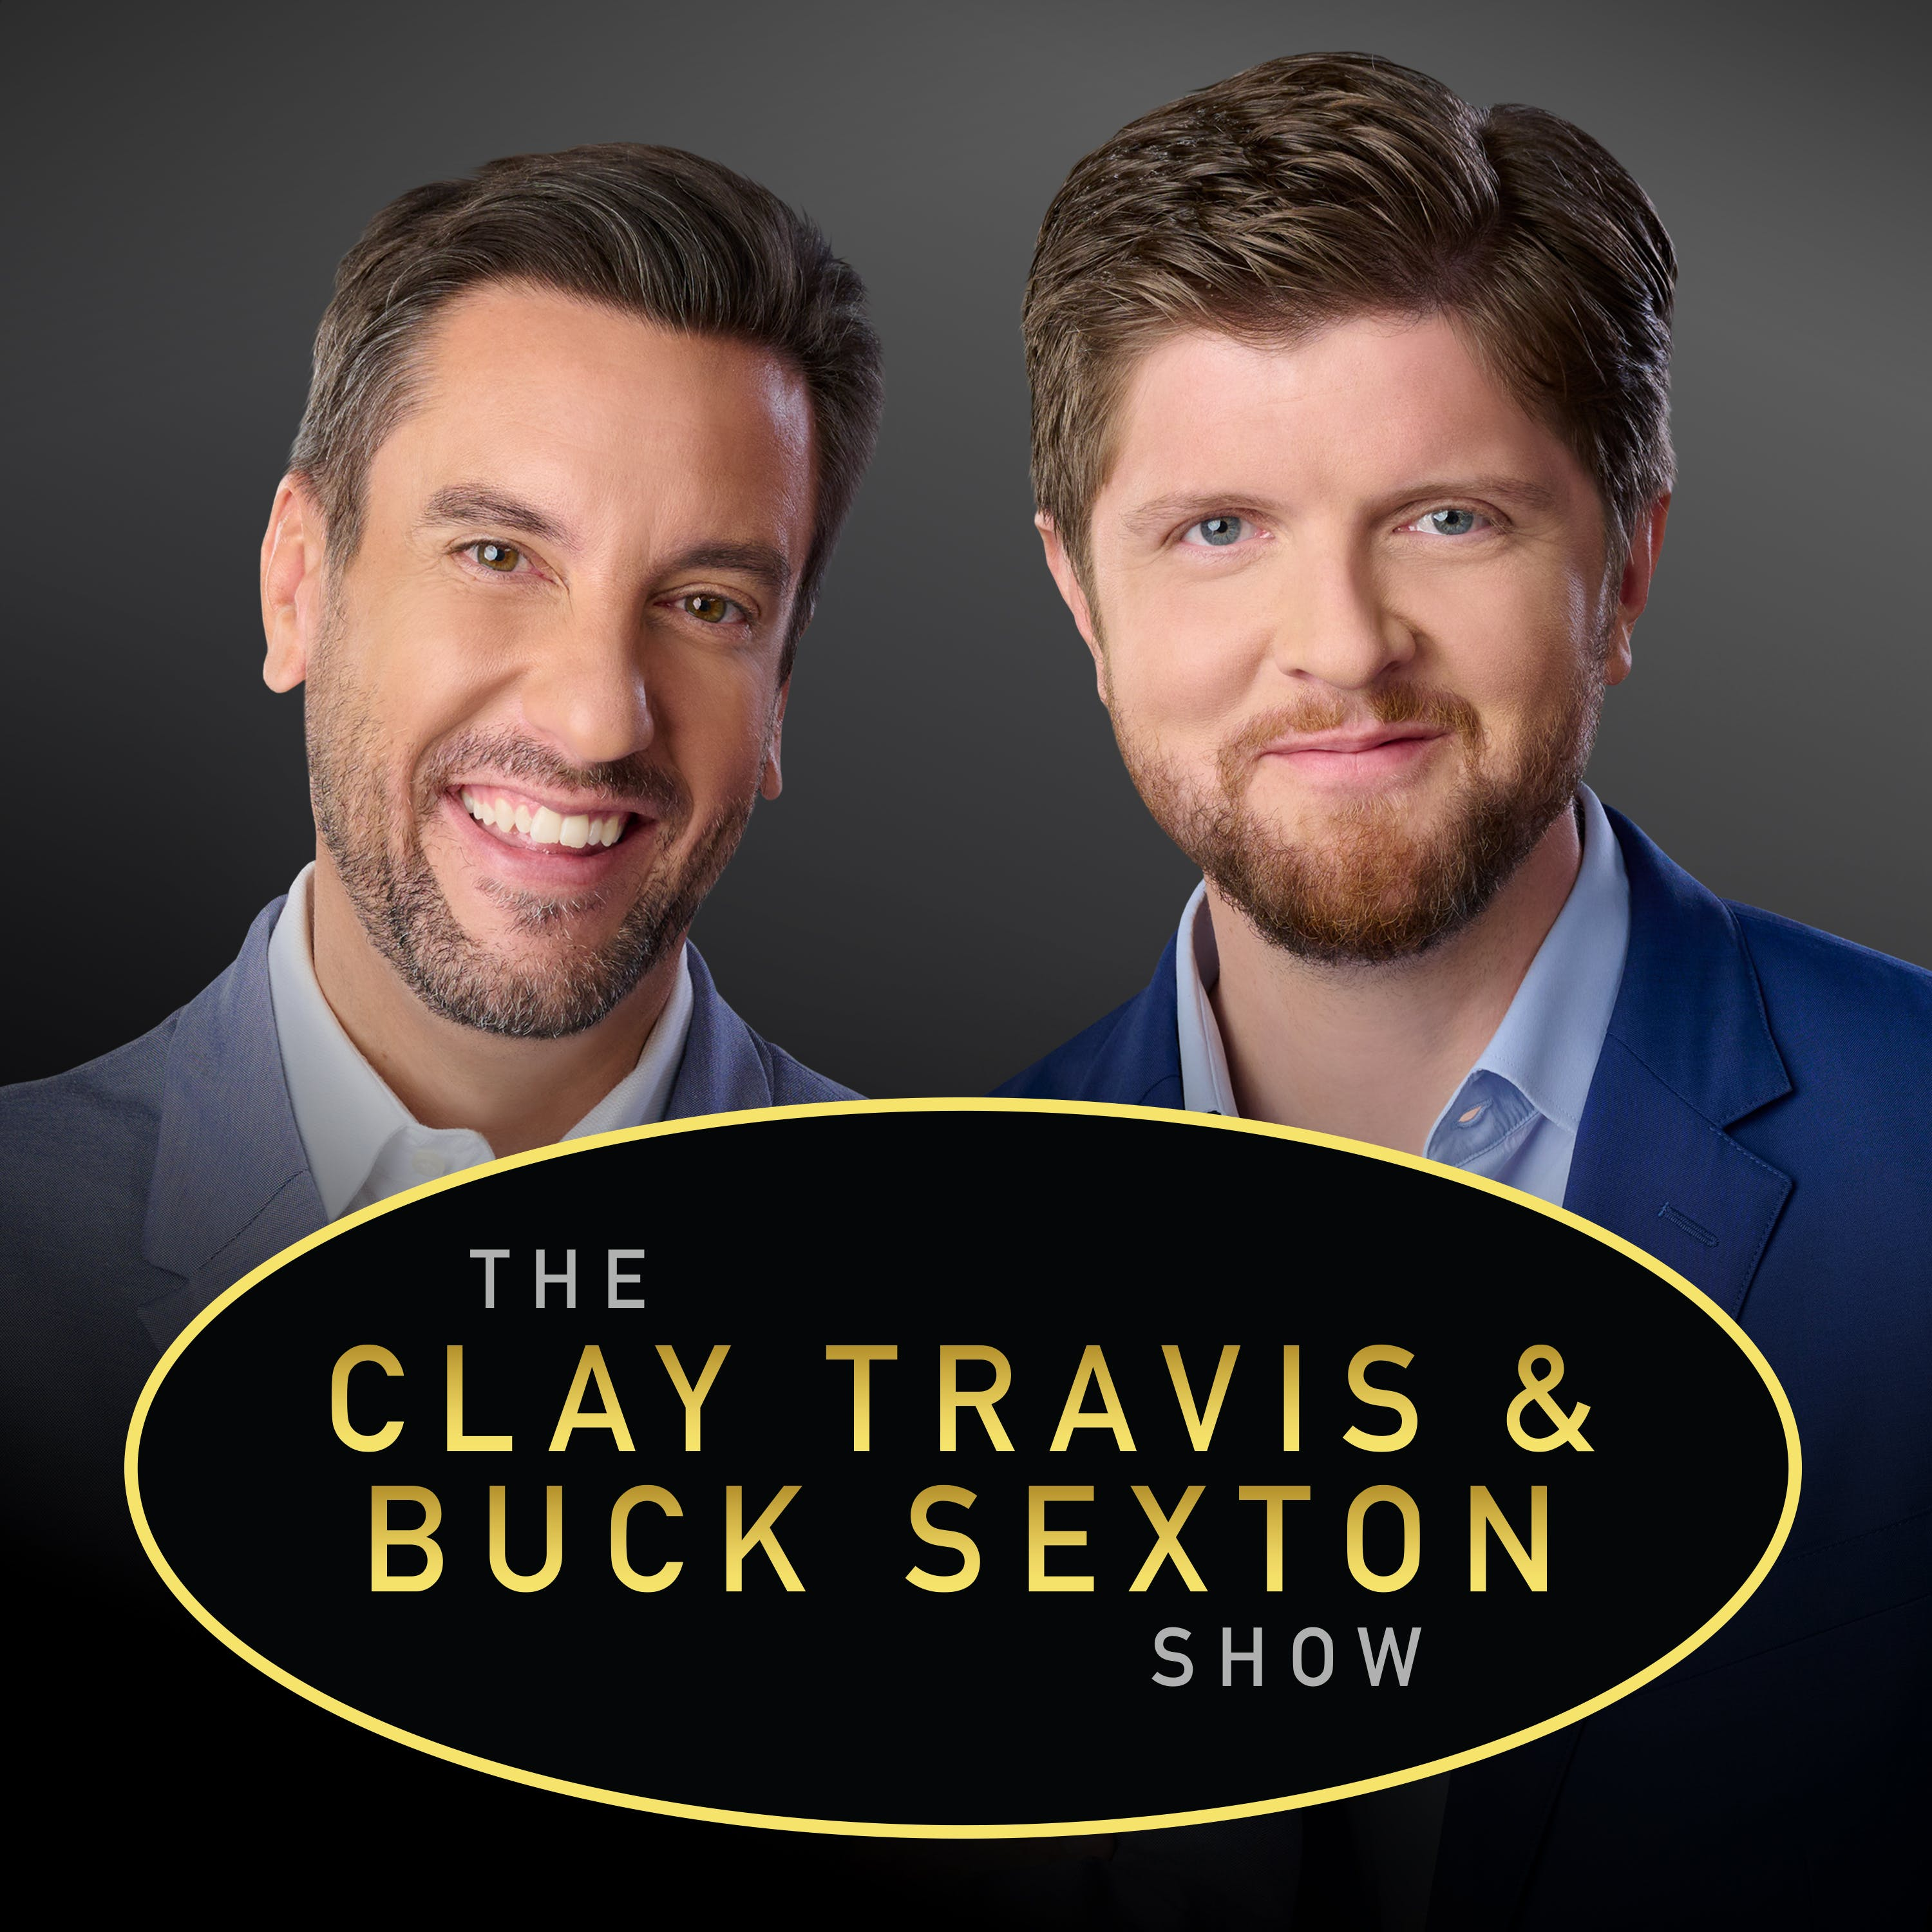 Clay Travis and Buck Sexton Show H1 – Sep 14 2021